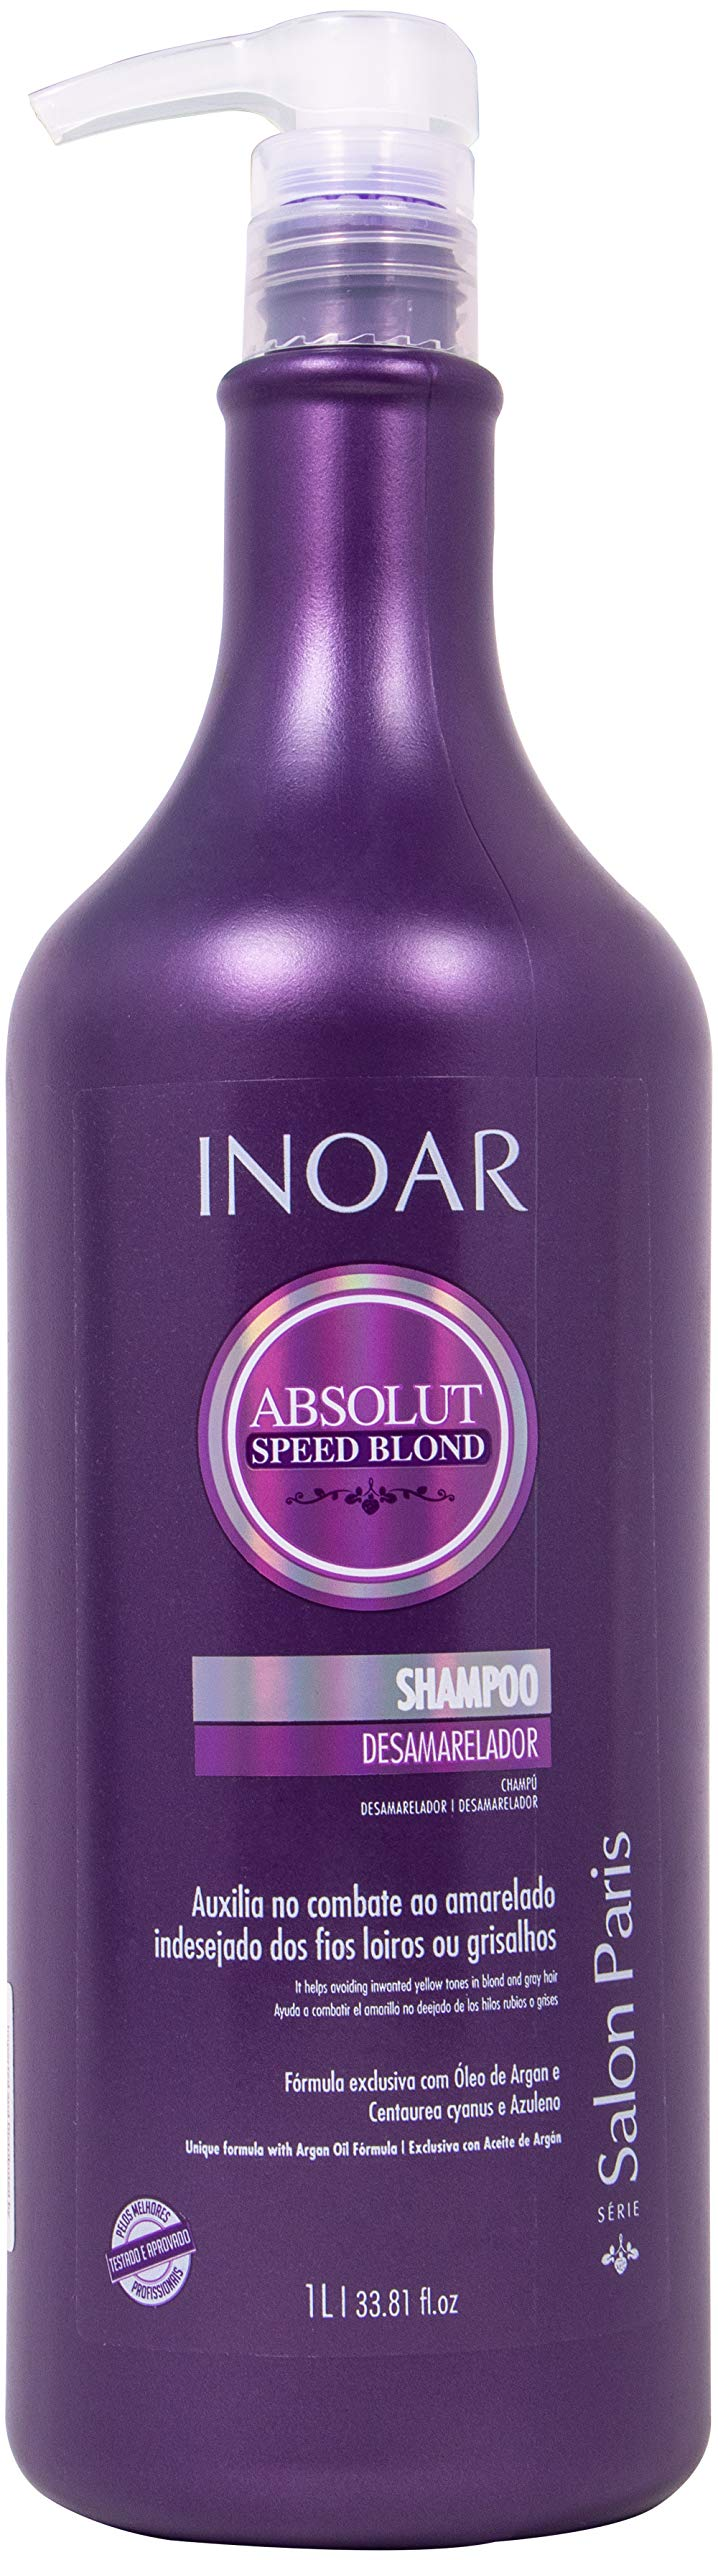 INOAR PROFESSIONAL - Speed Blond Shampoo - Anti-Yellowing Treatment For Bleached, Blond, Brassy & Gray Hair Types (33.8 Ounce / 1000 Milliliter) by Inoar